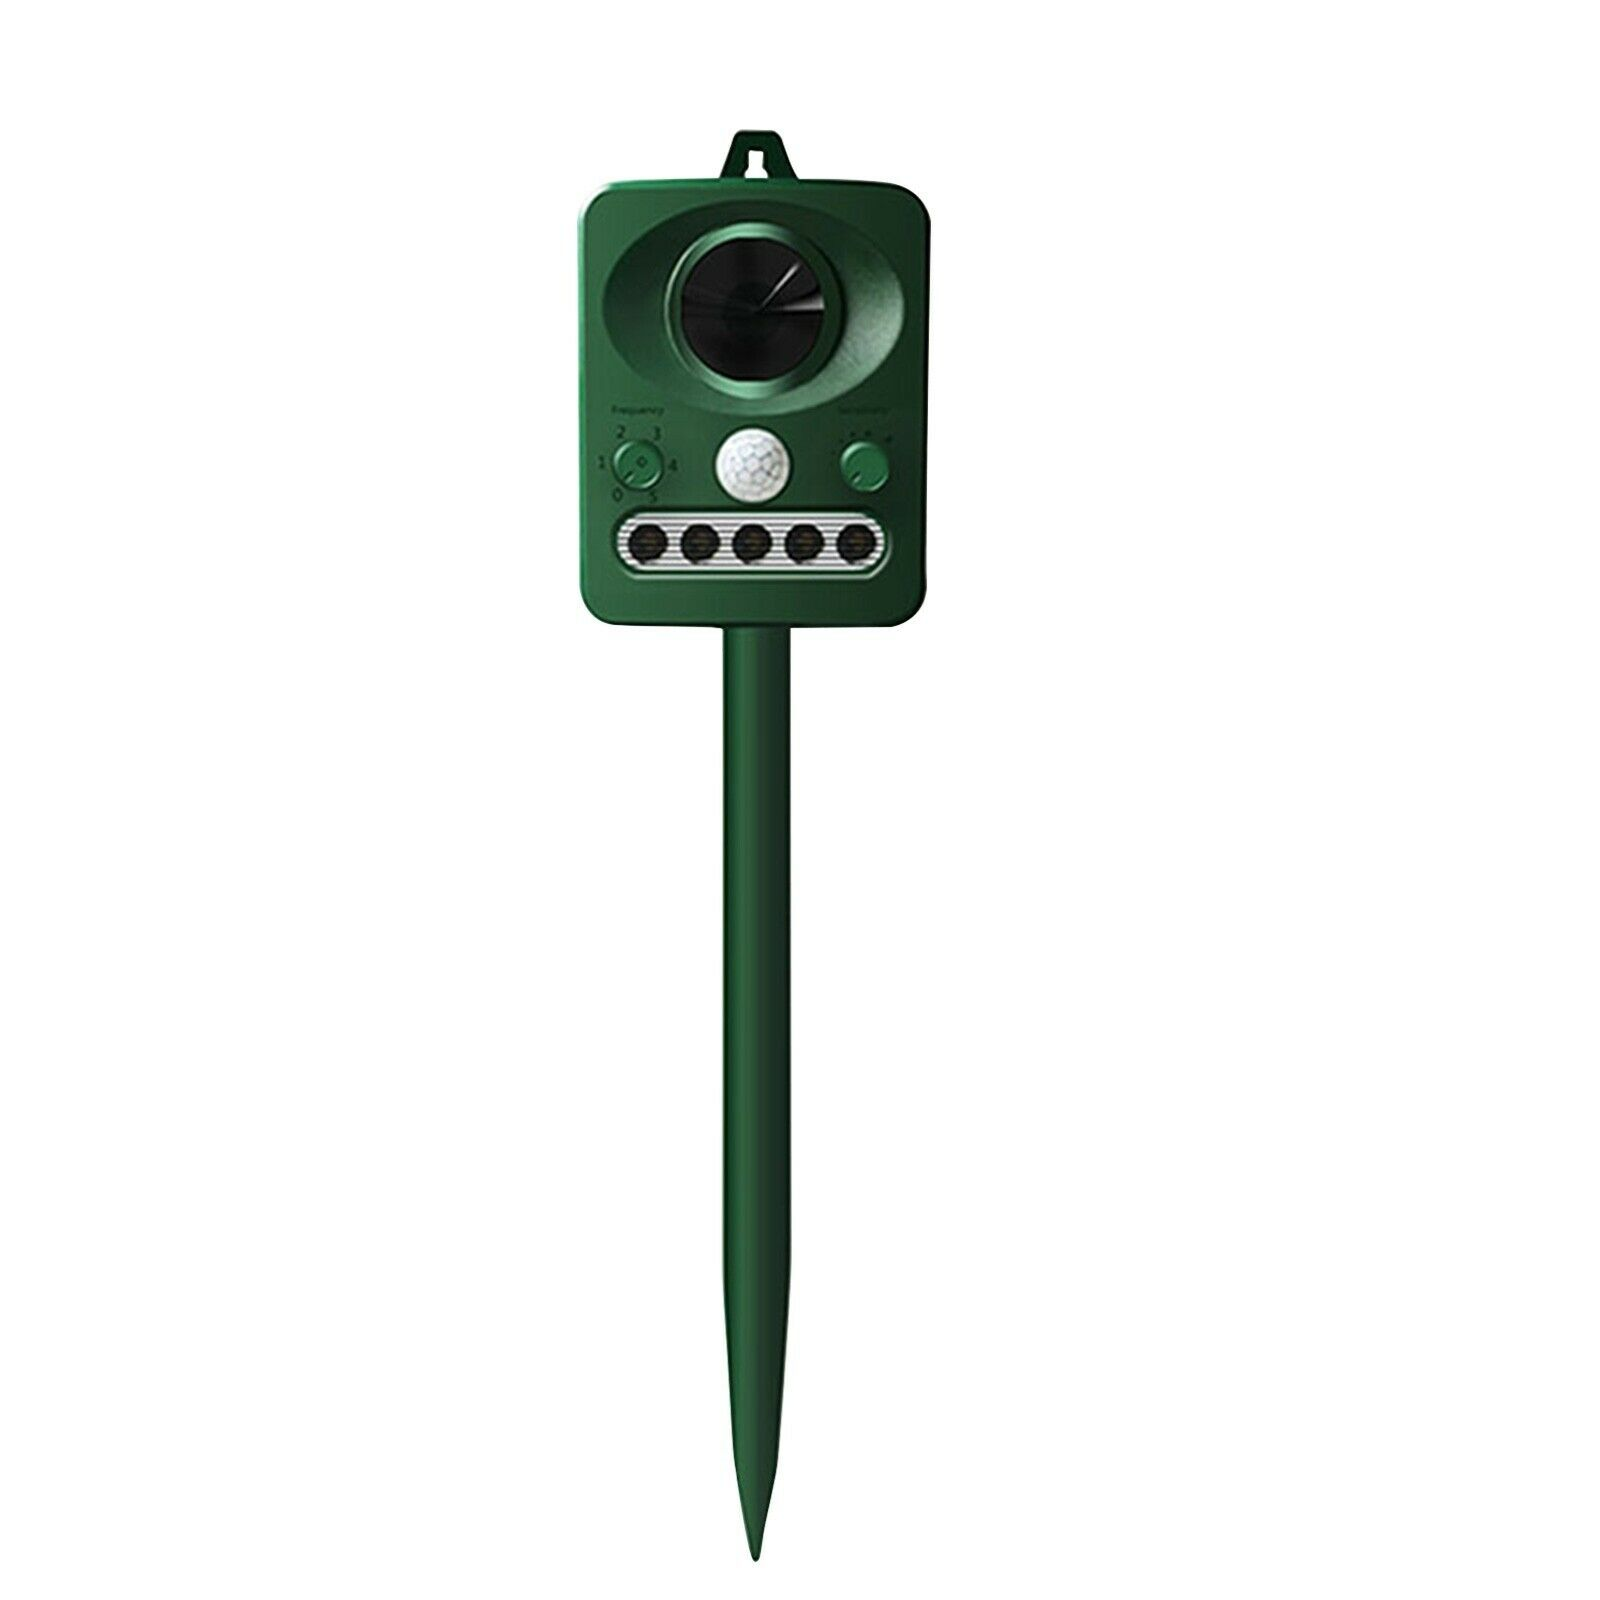 Ultrasonic Animal Repeller Solar Electronic Outdoor Waterproof with Flashing LED